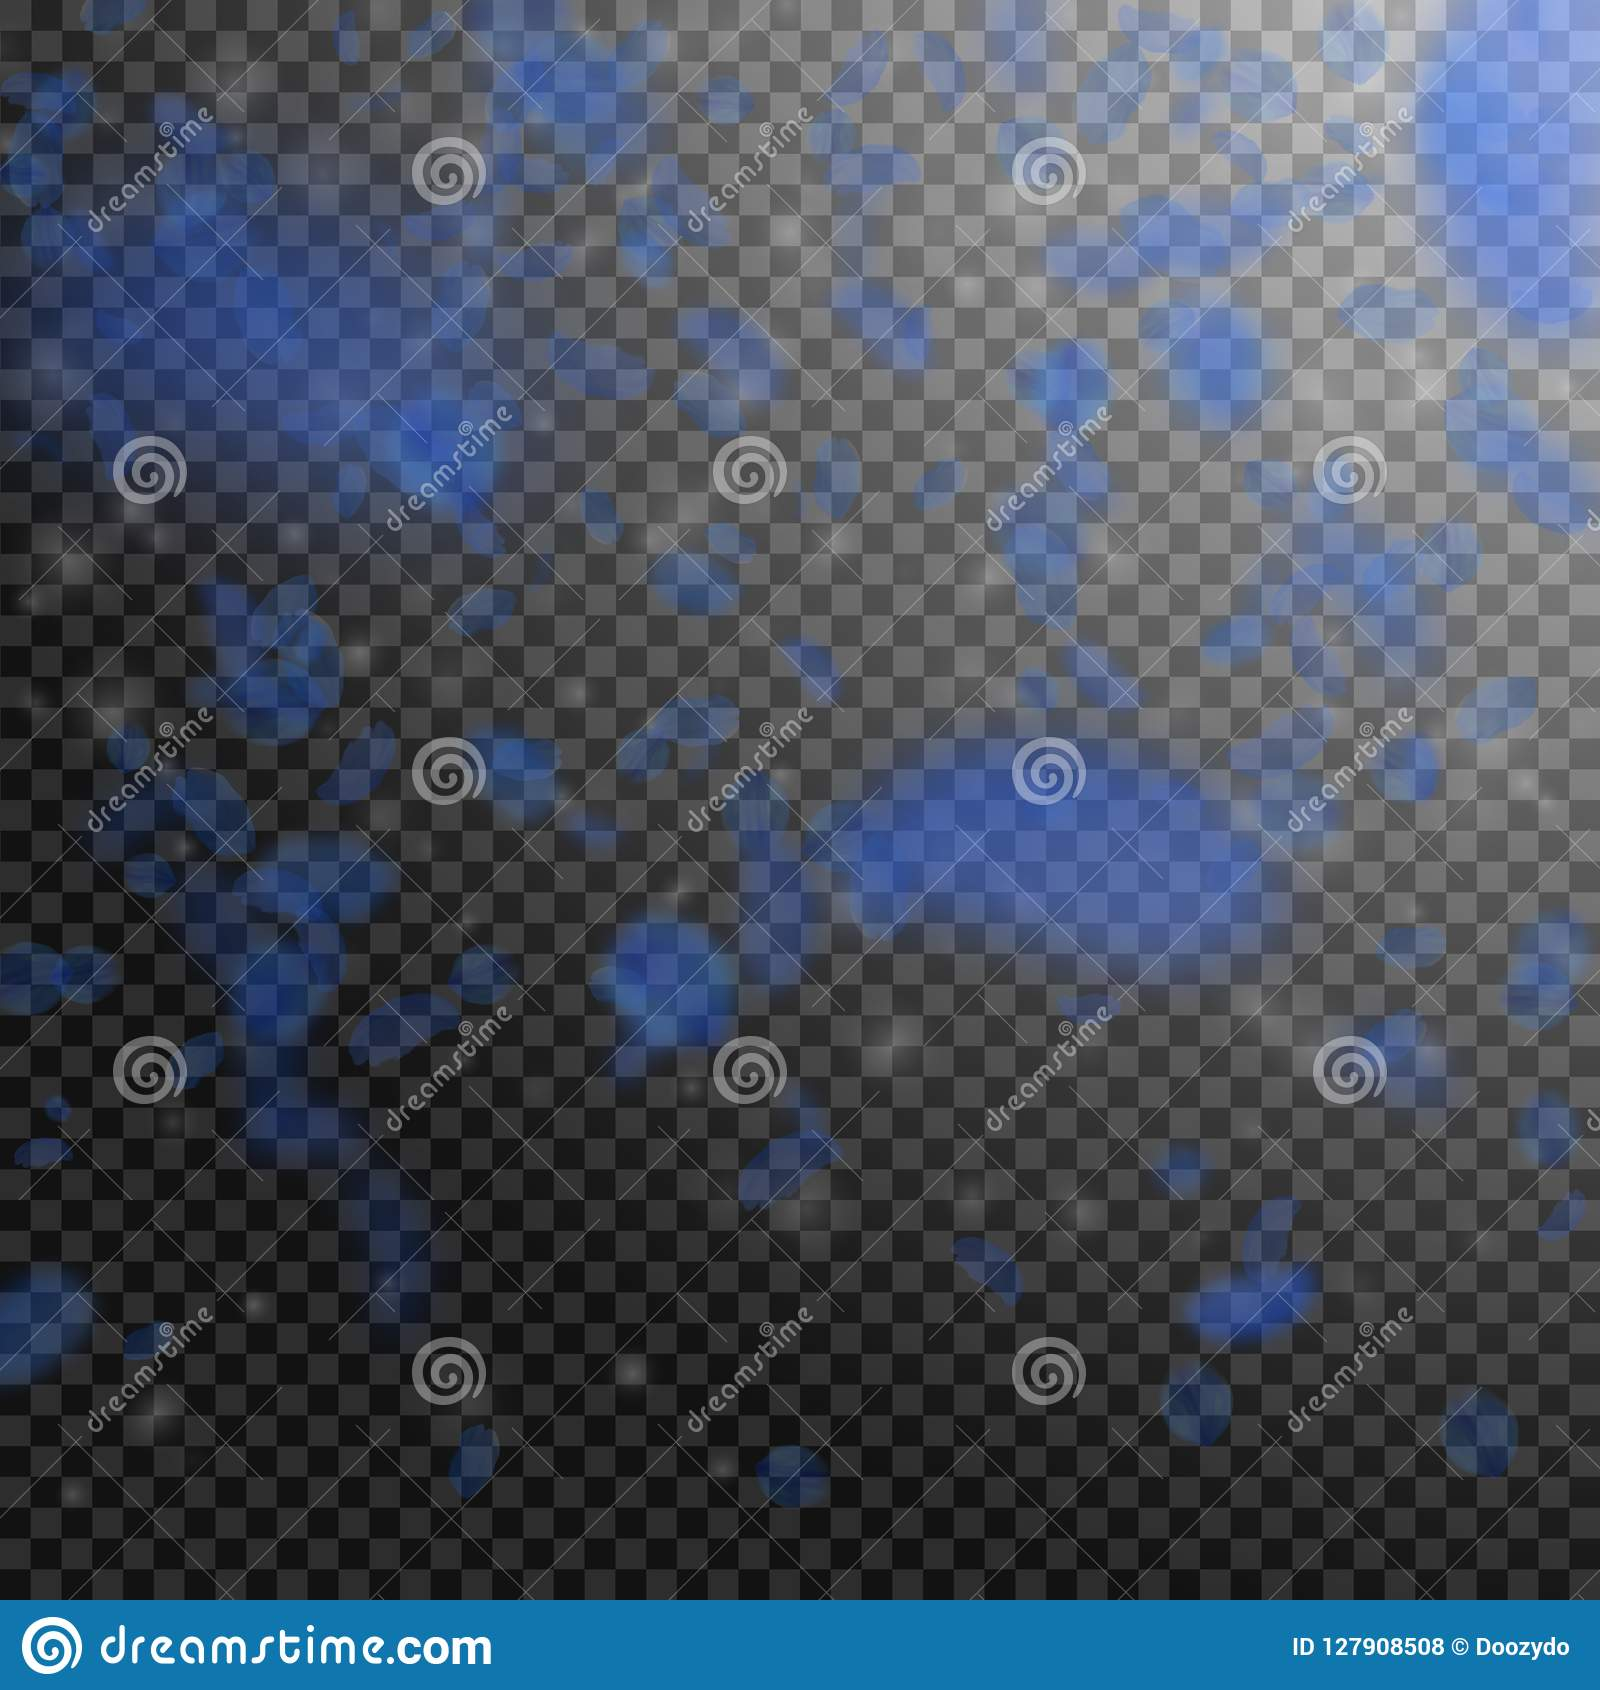 Dark blue flower petals falling down uncommon romantic flowers dark blue flower petals falling down uncommon romantic flowers gradient flying petal on transparen izmirmasajfo